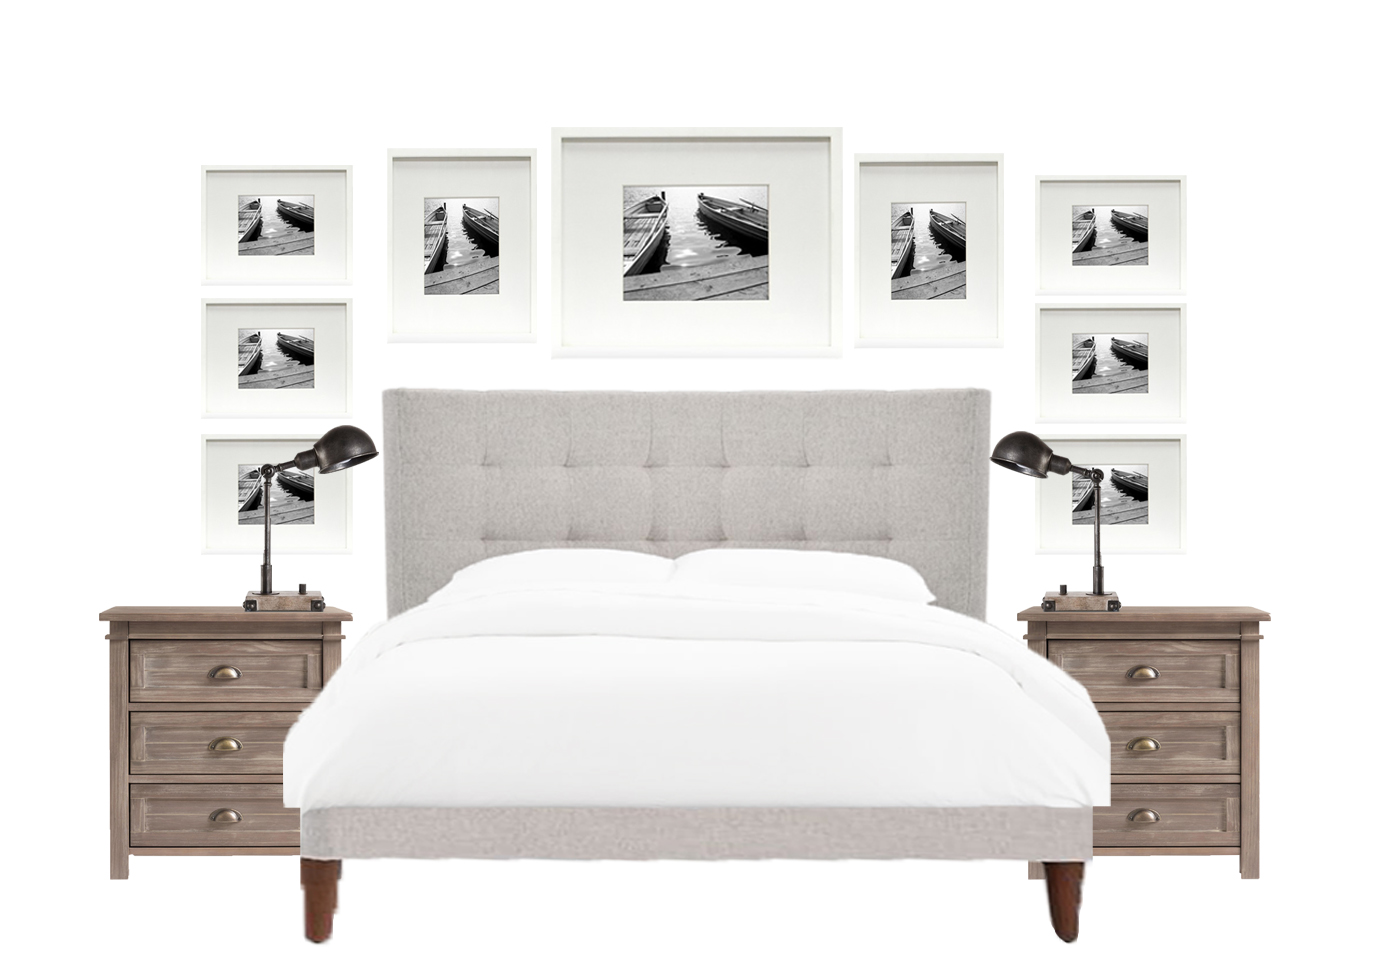 How to Decorate Above A Bed - Gallery Wall